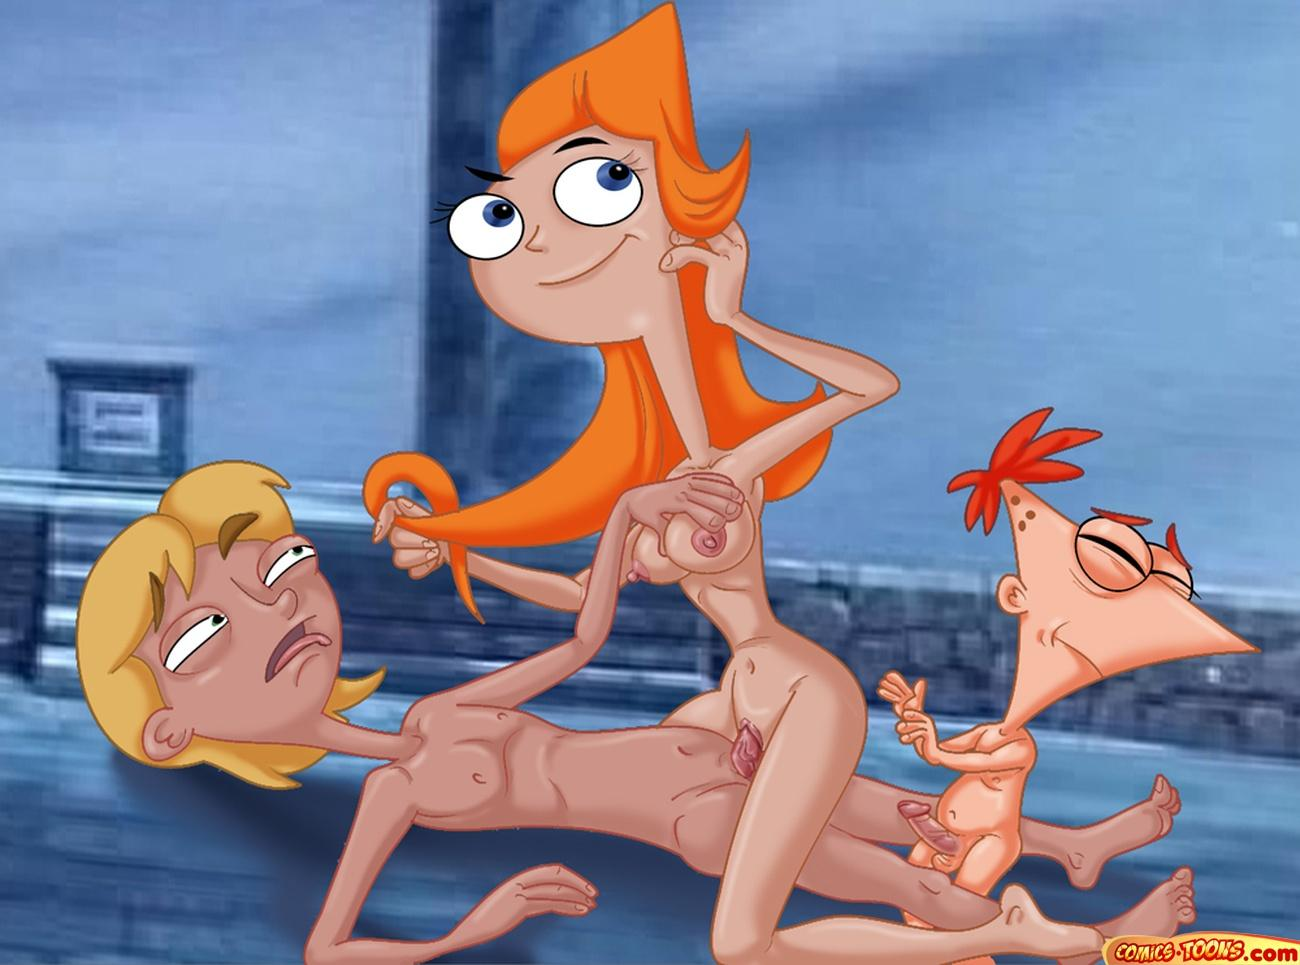 Join told Porno di phineas e ferb sorry